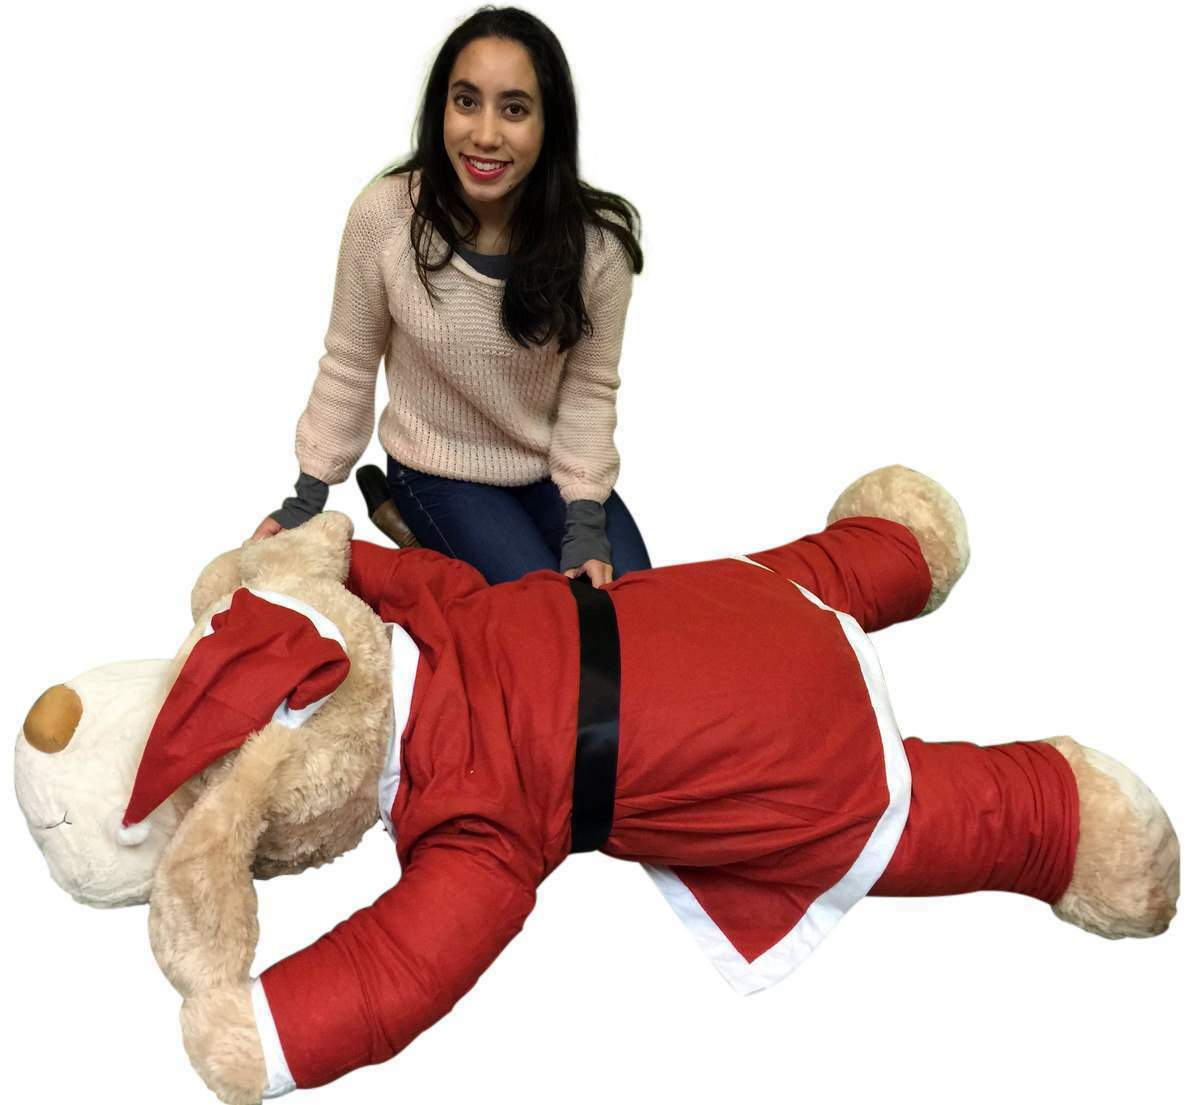 Christmas Giant Stuffed Dog Wears Removable Santa Suit, 5 Feet Long Soft